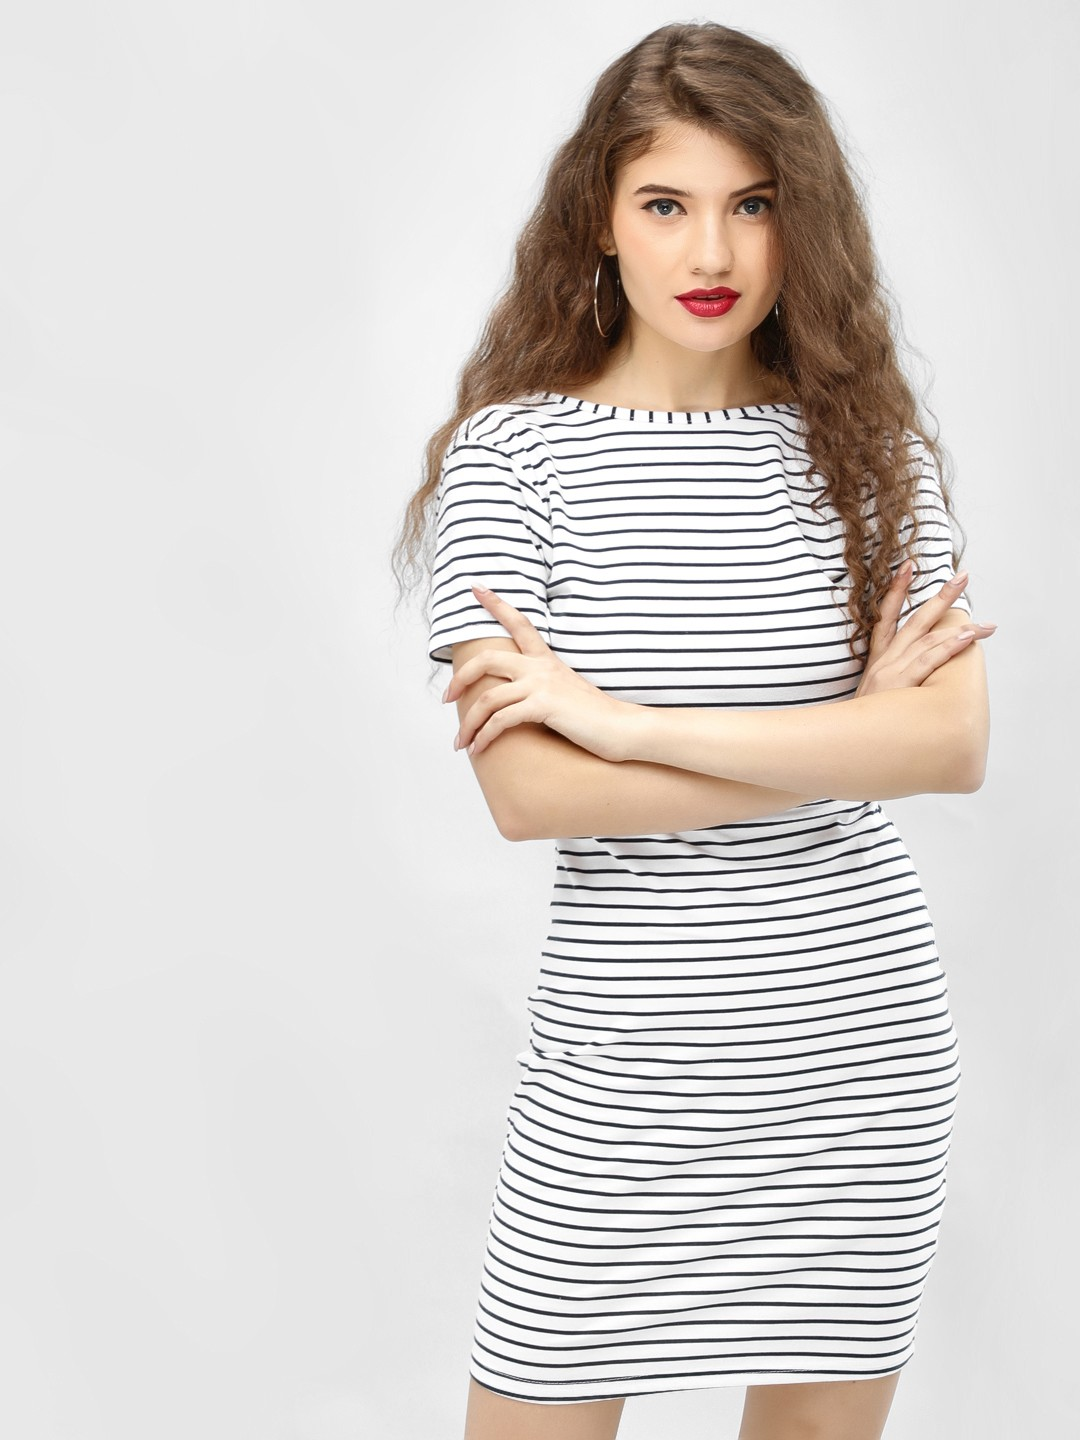 Daisy Street White/ Navy Horizontal Striped Bodycon Dress 1